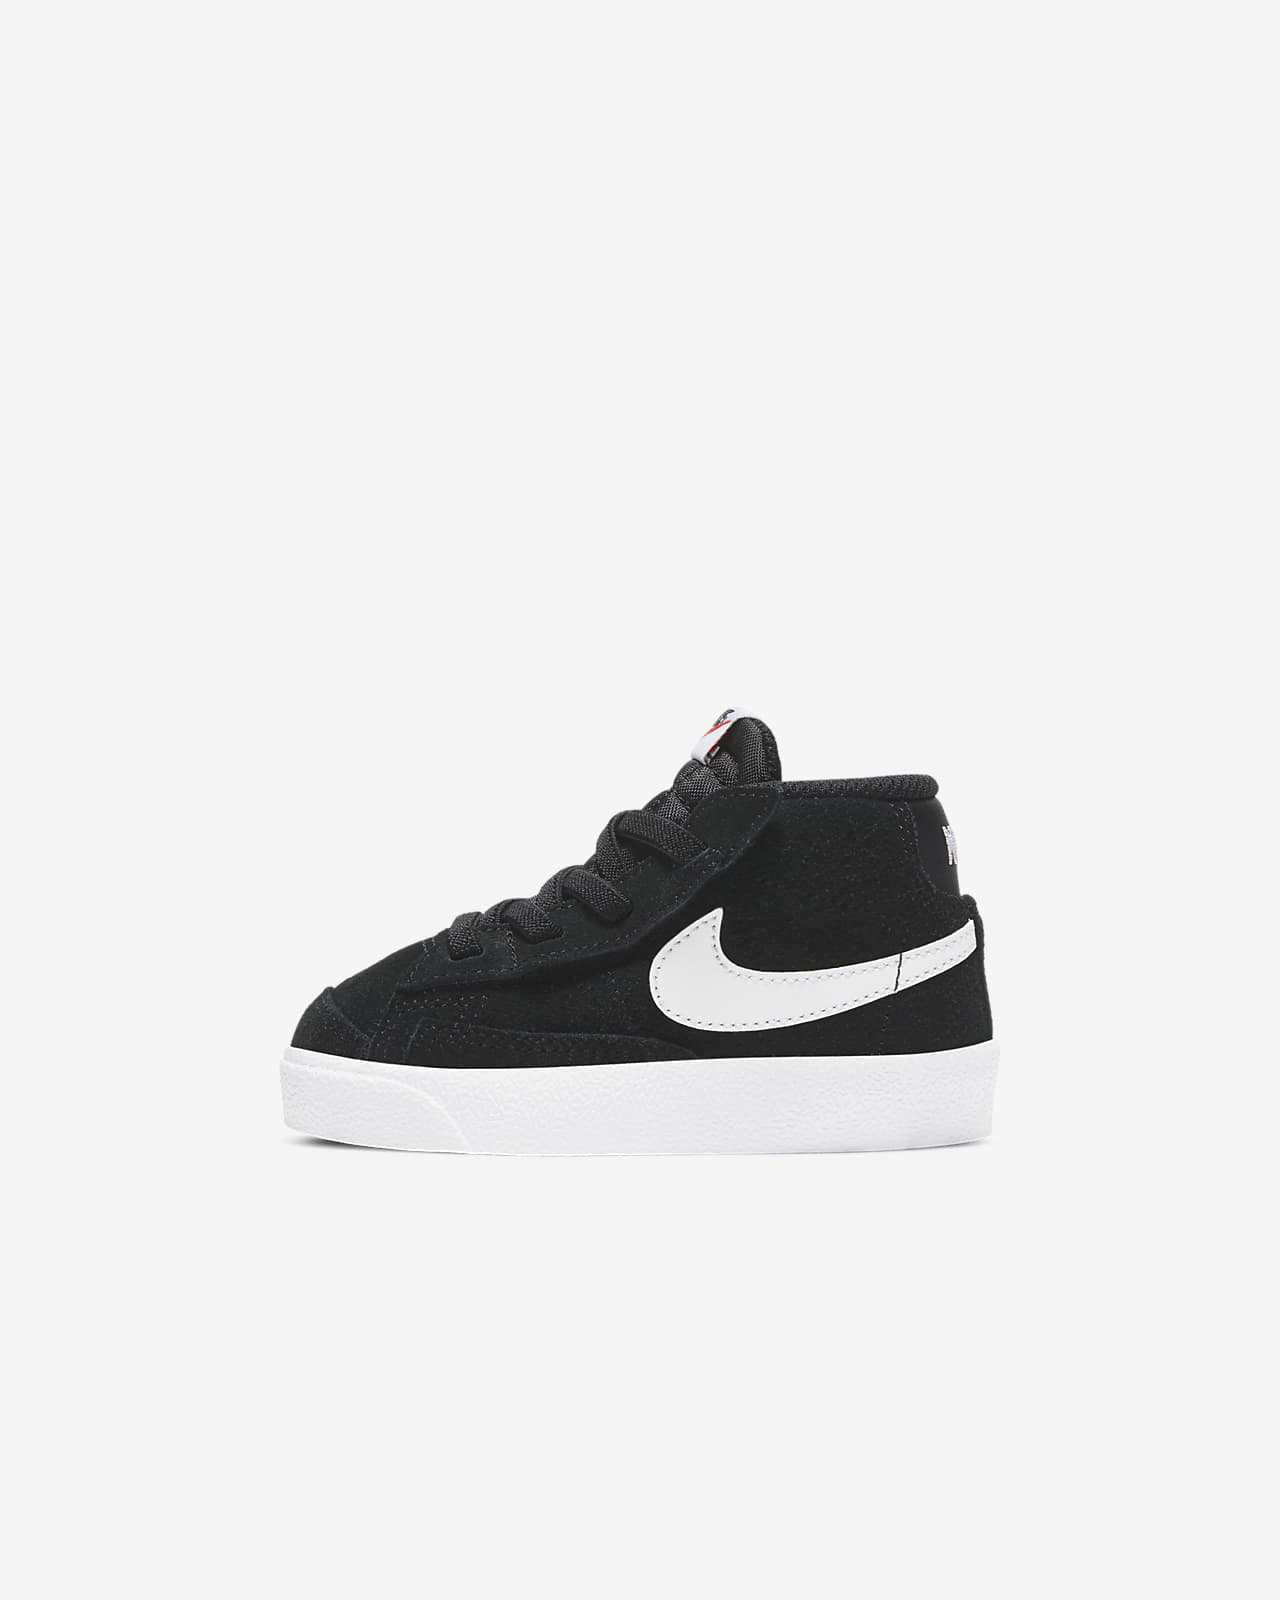 Nike Blazer Mid '77 Baby/Toddler Shoe